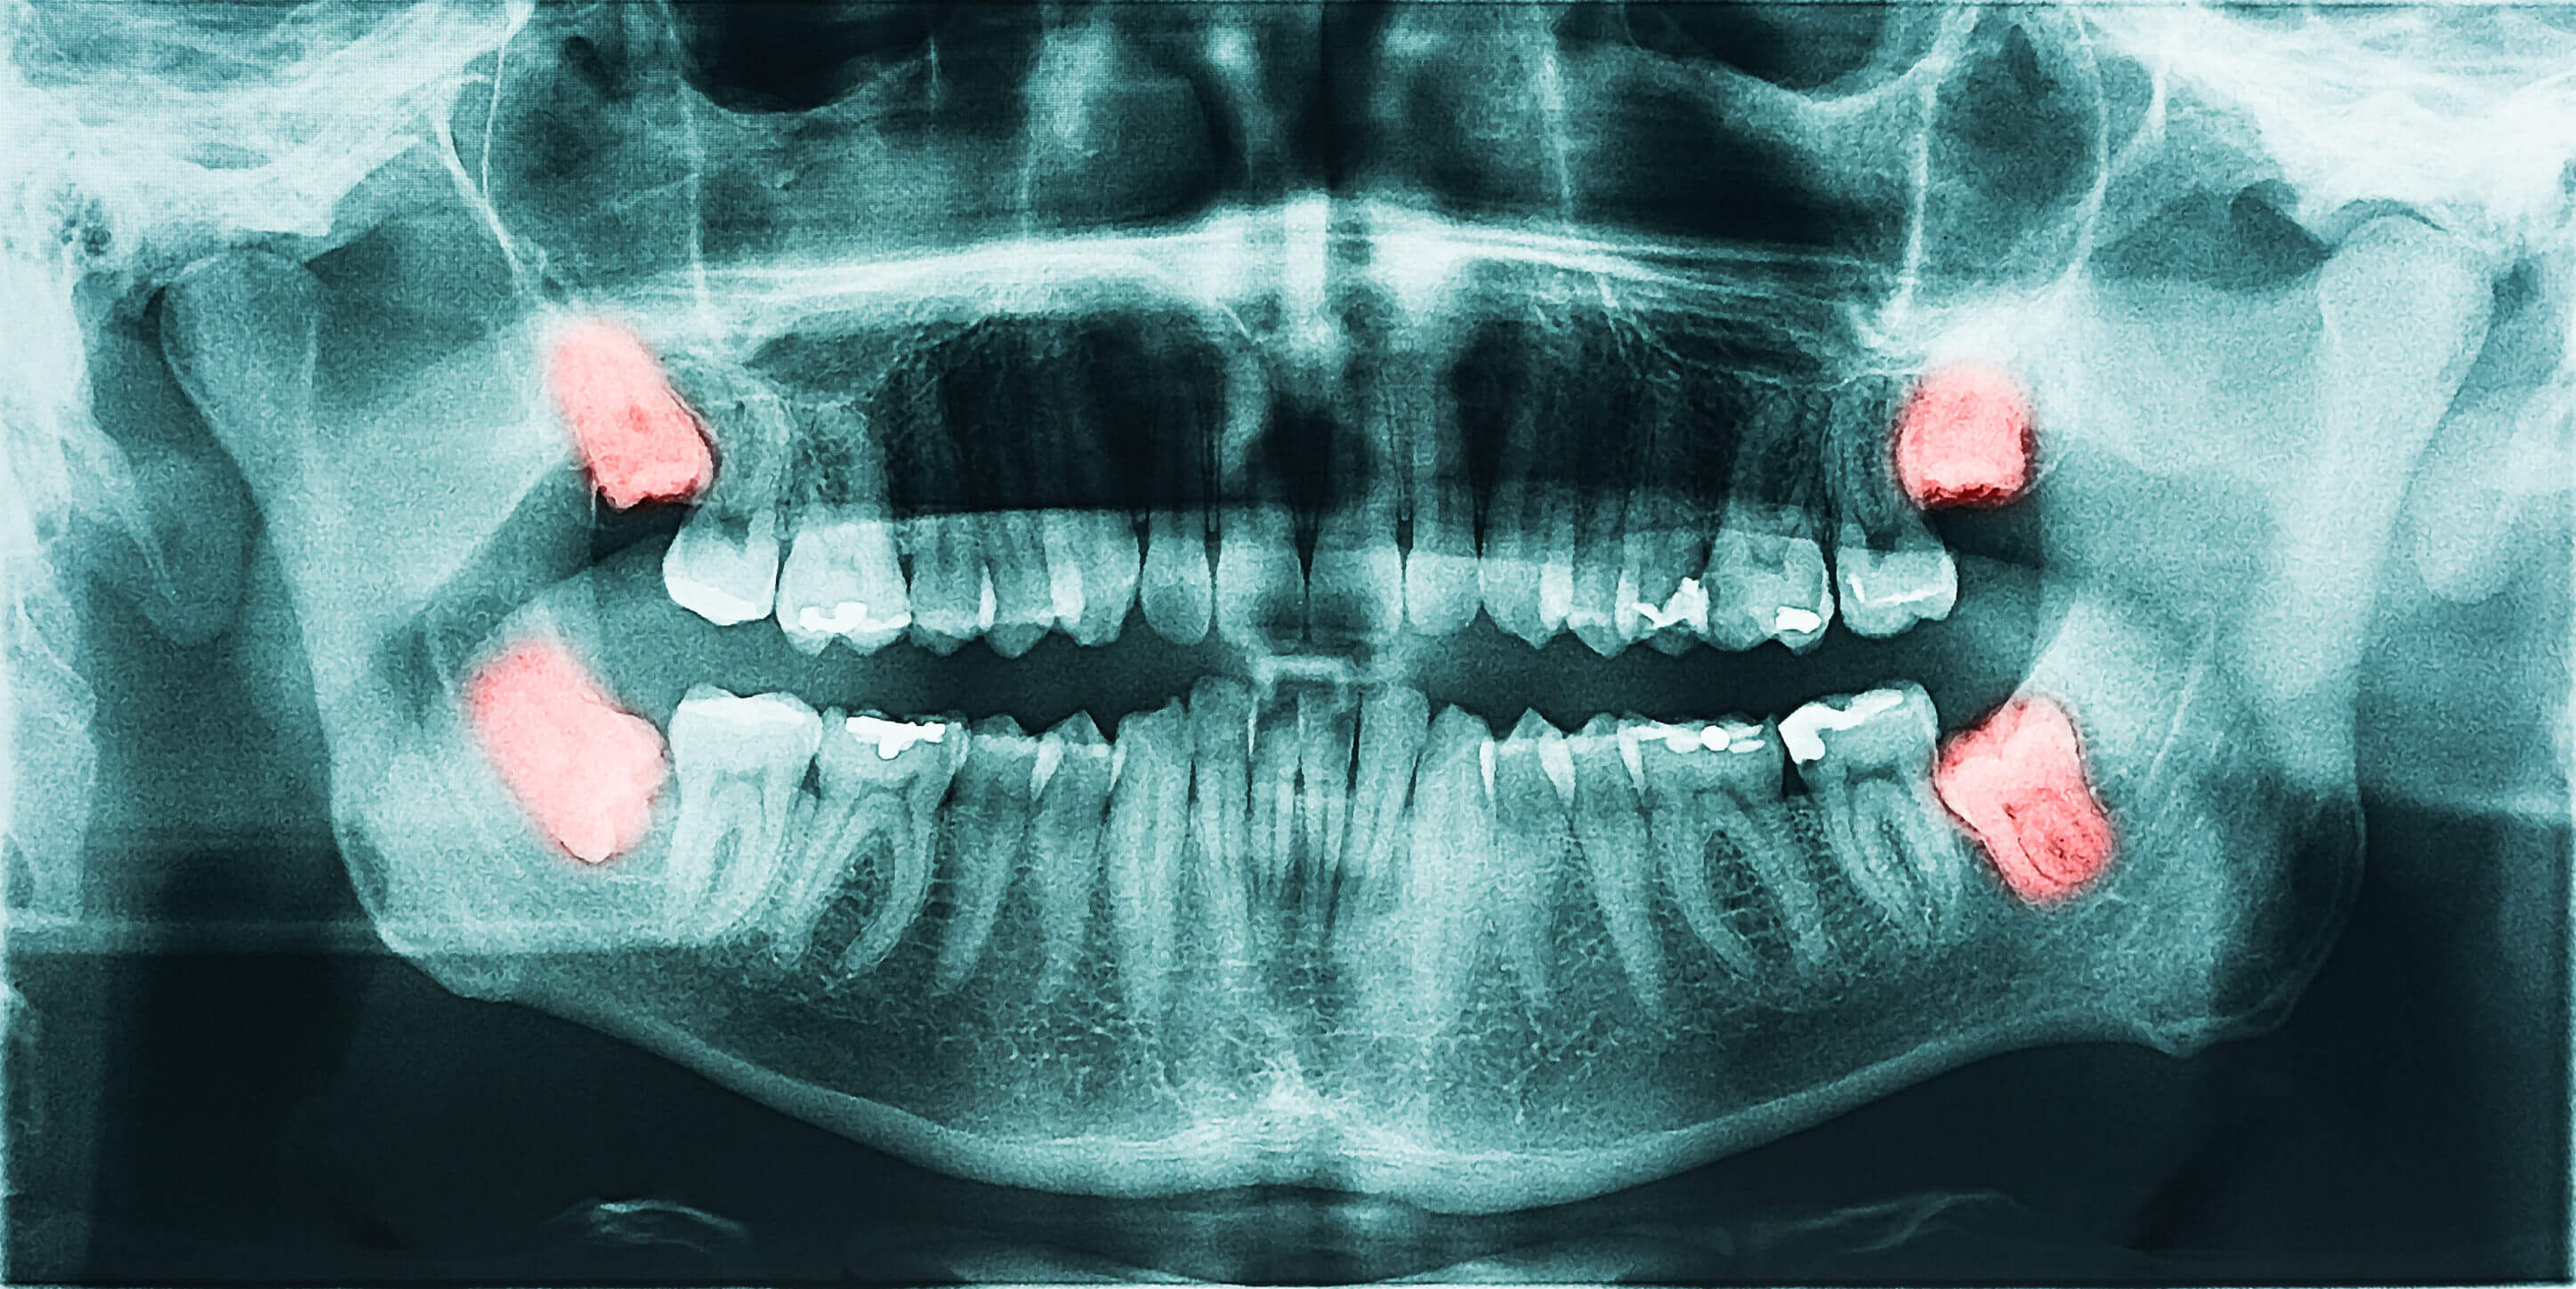 Oral and maxillofacial surgery - Omni Dental